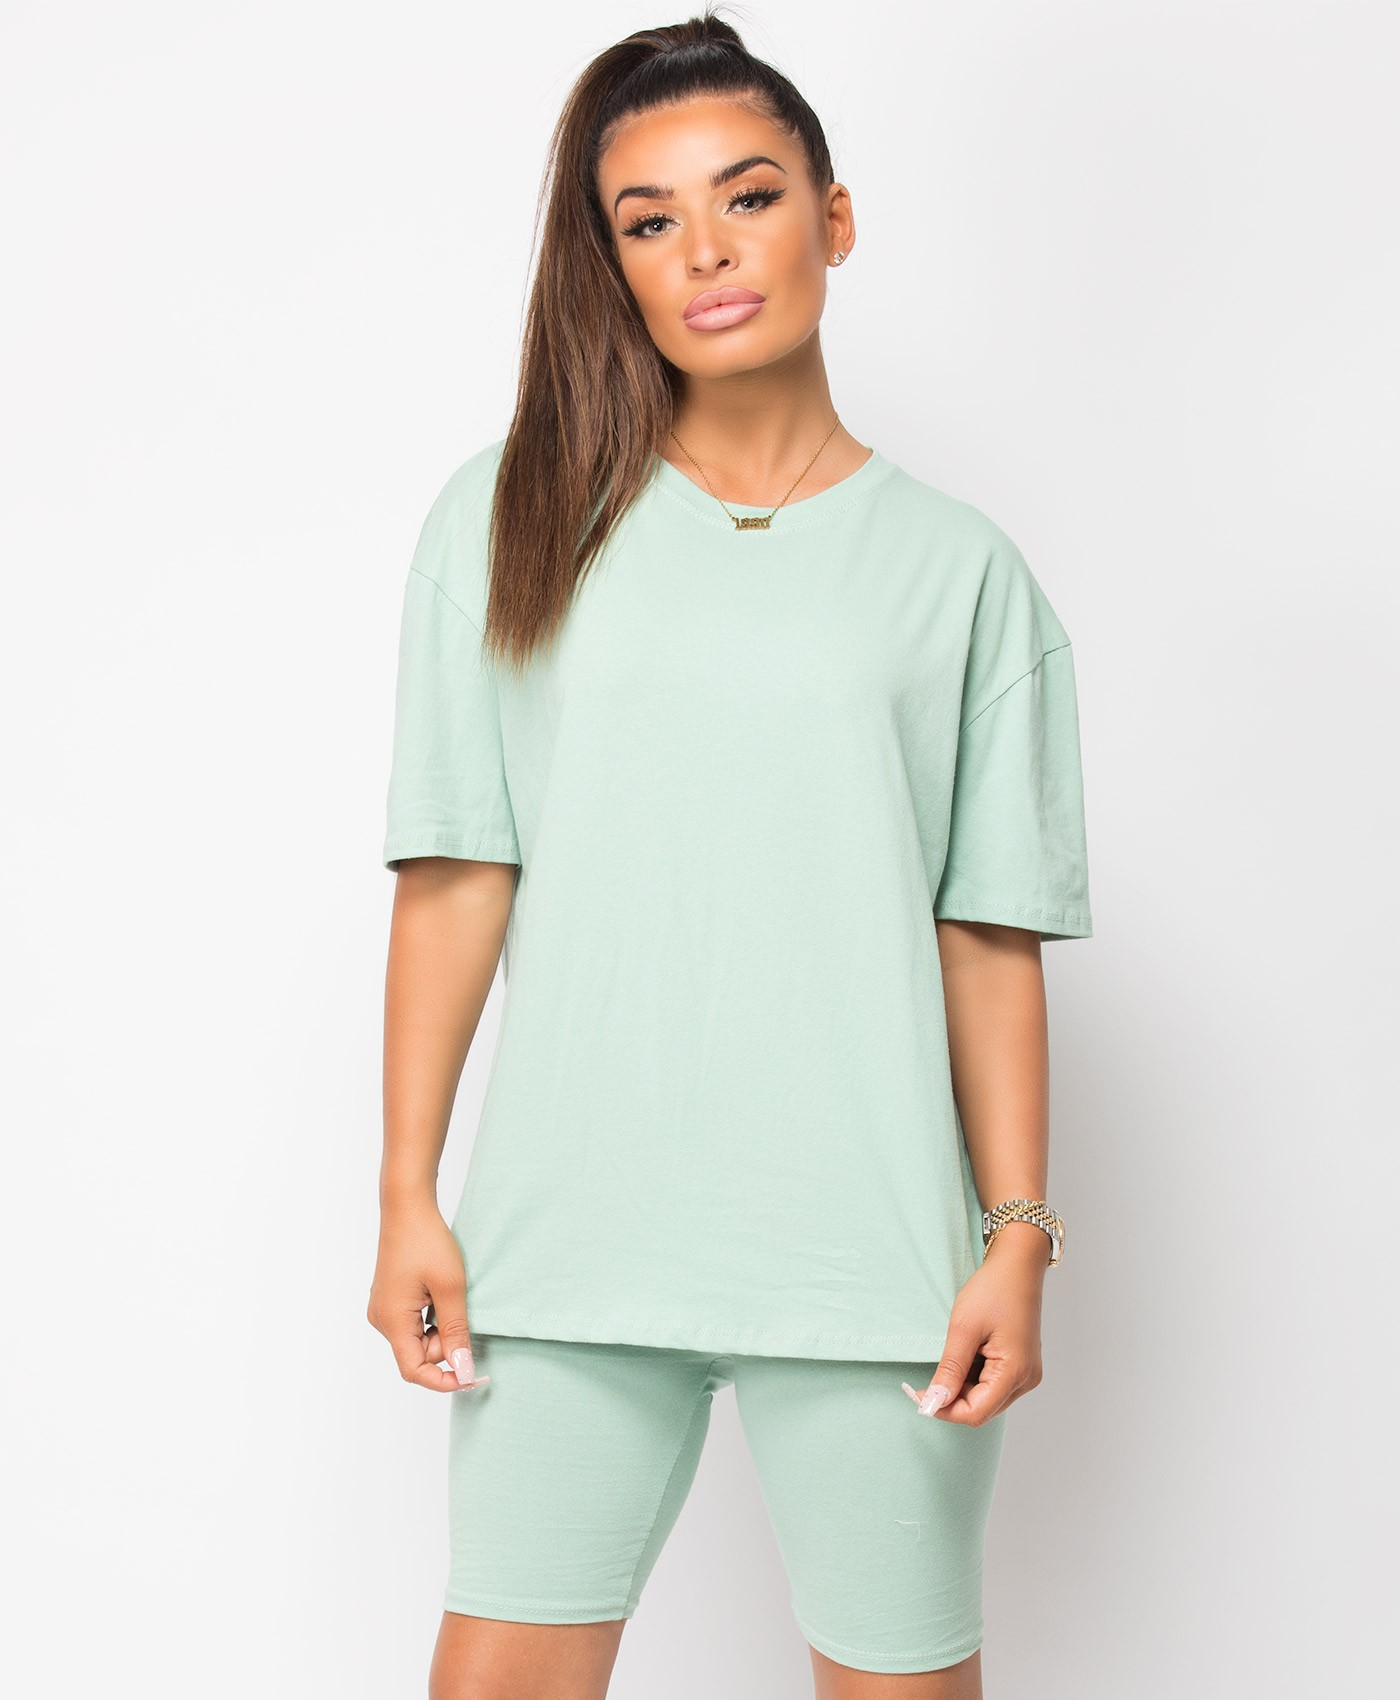 Mint Plain Cycling Short & T-Shirt Co Ord Loungewear Set